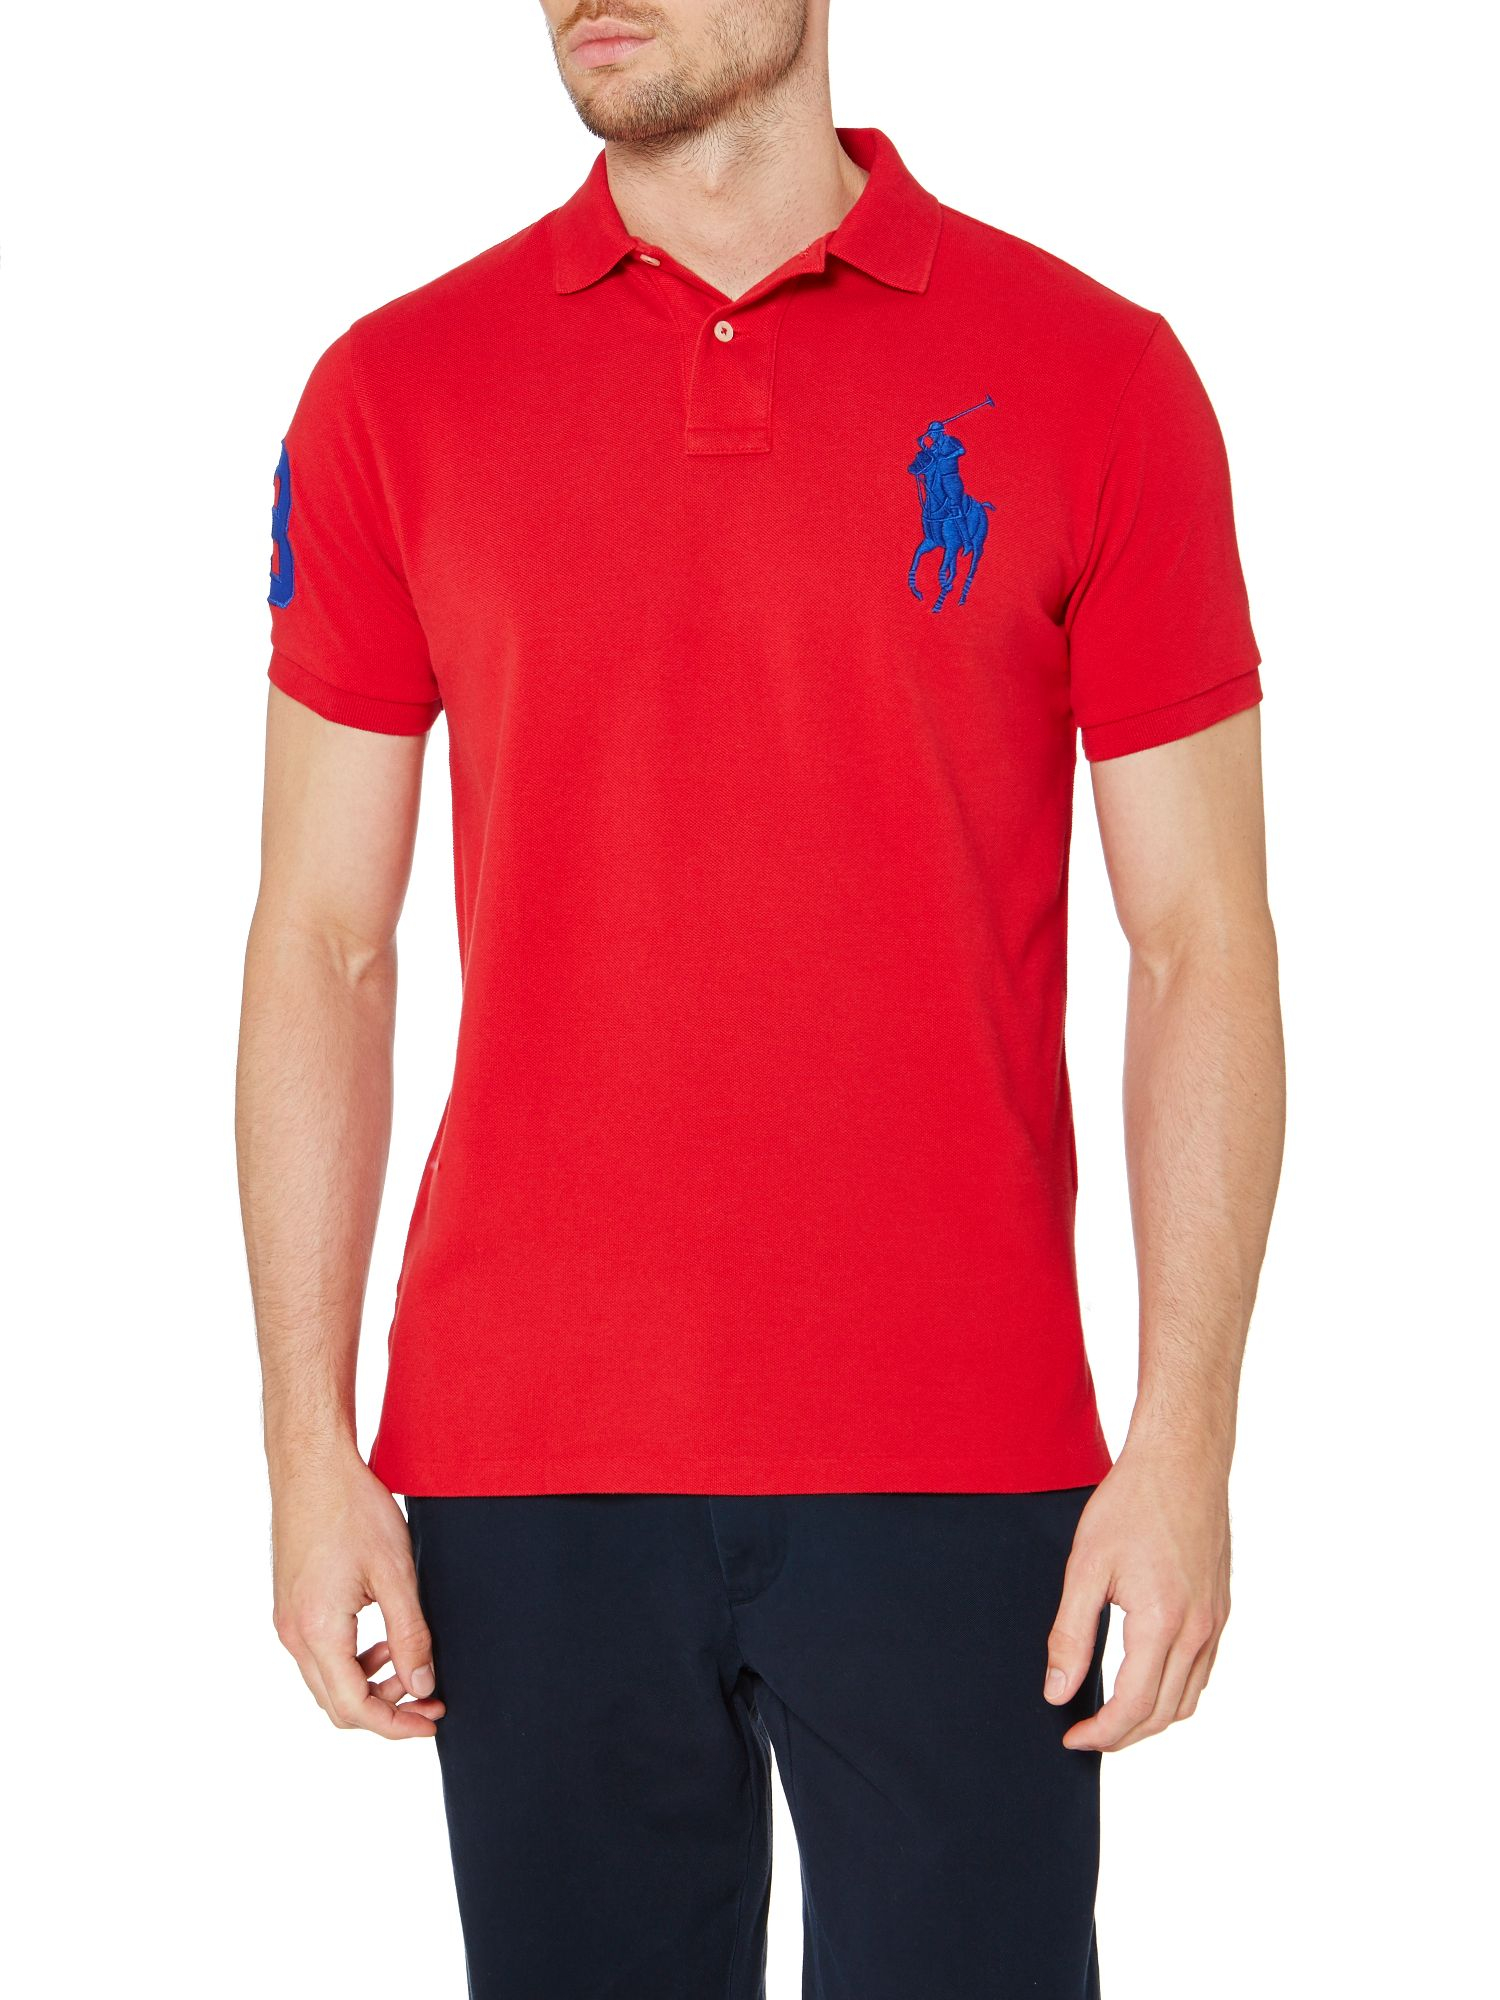 Find great deals on eBay for red polo t shirt. Shop with confidence.